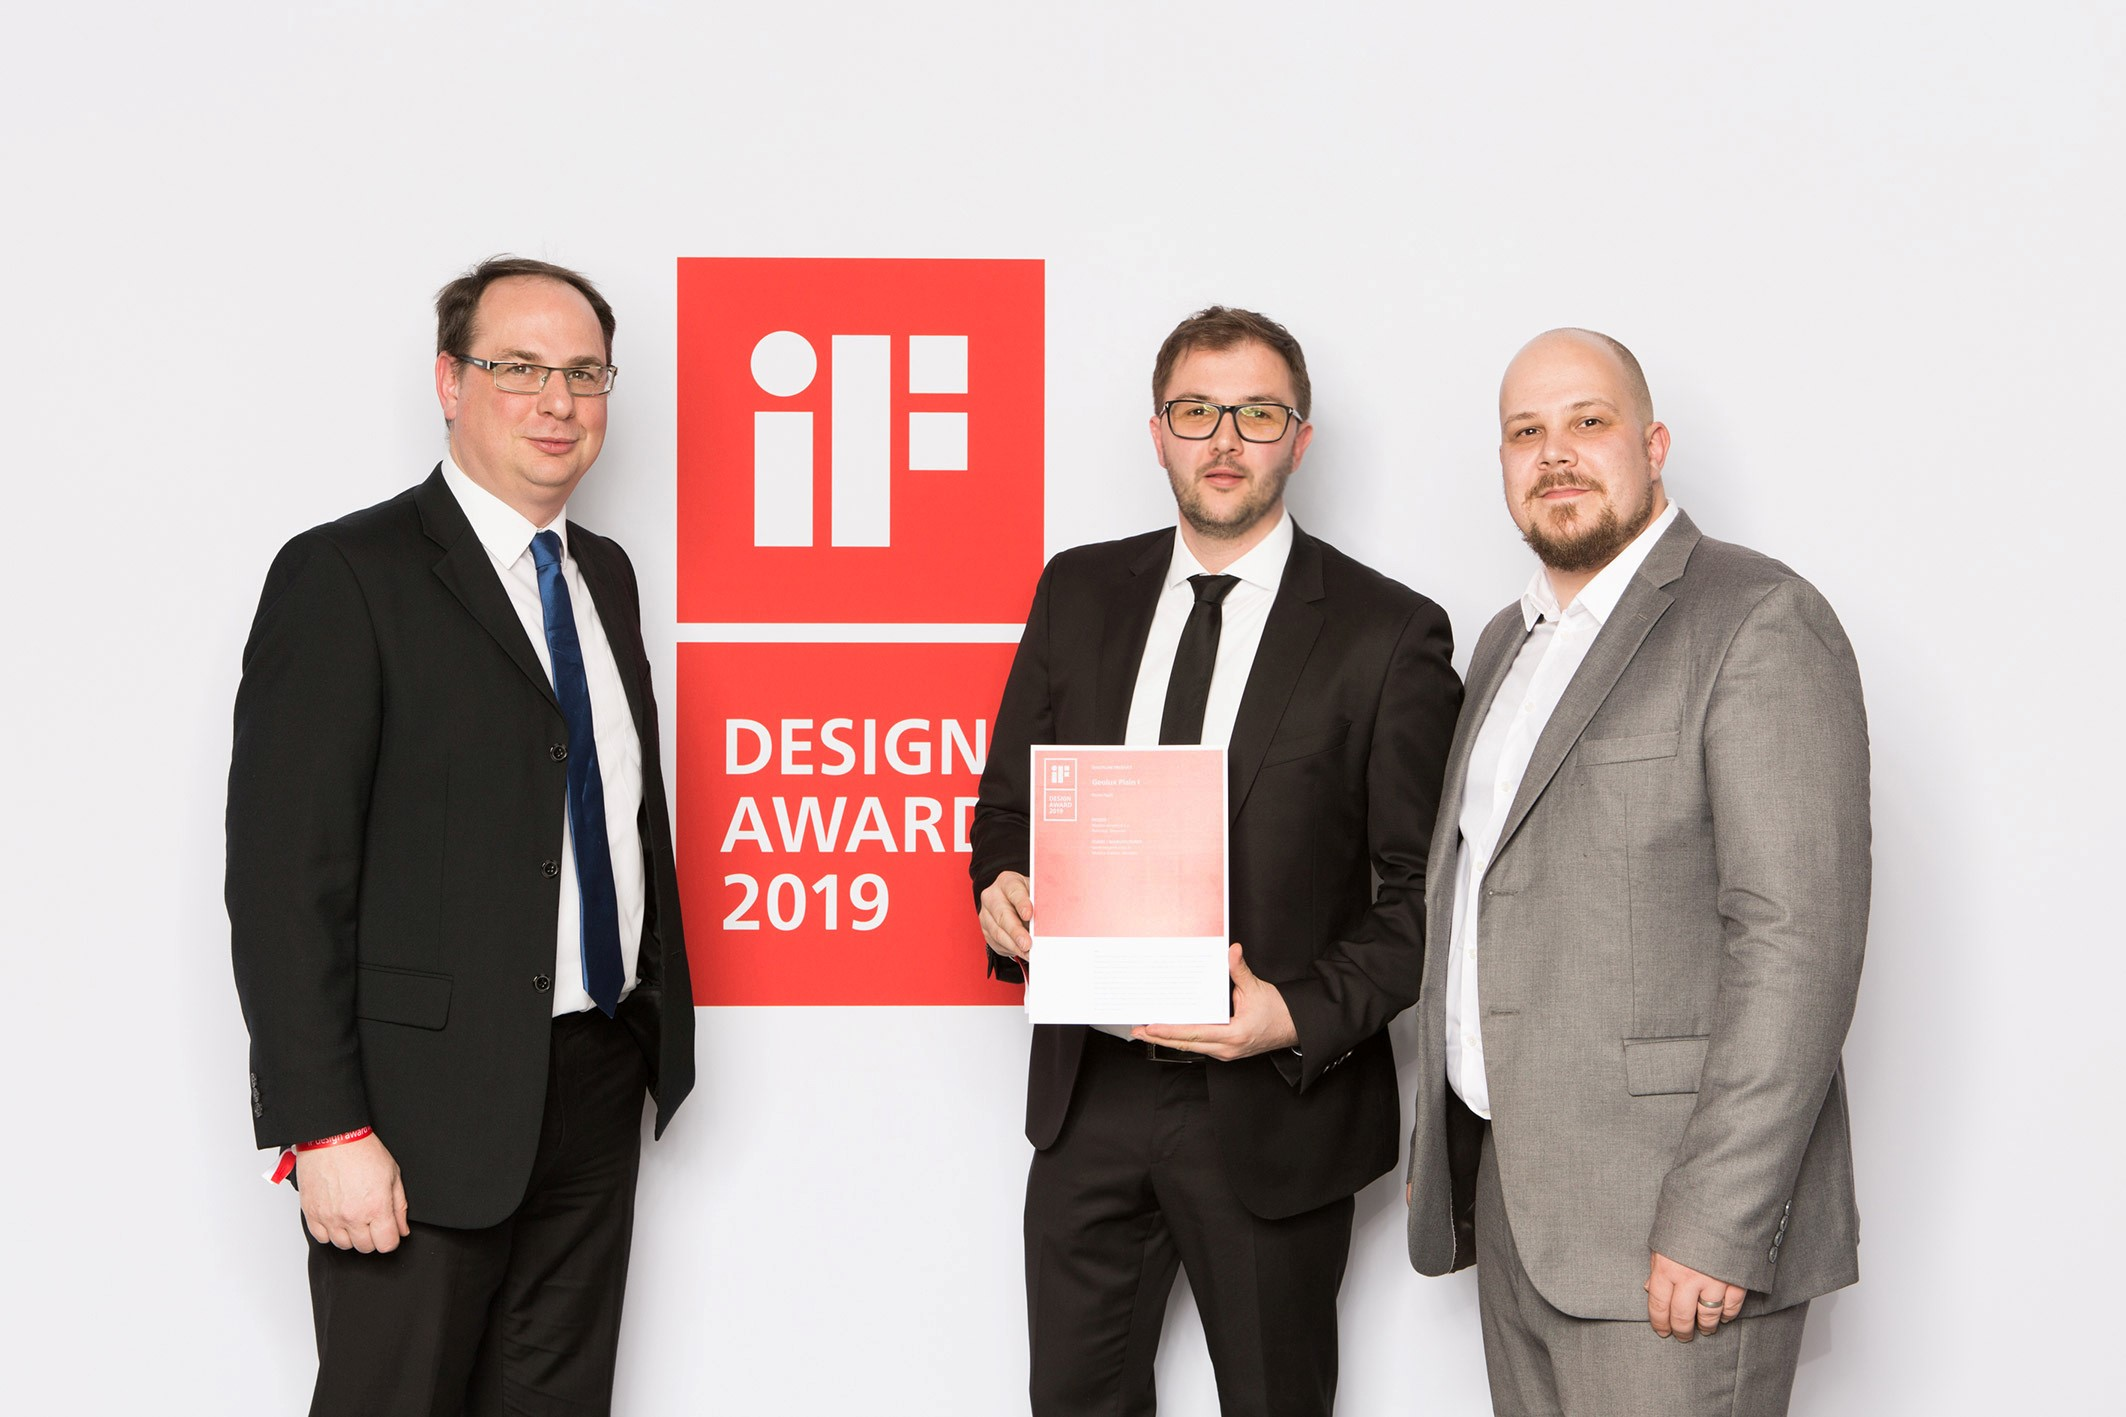 Reaping the rewards – the iF Design Award is ours!